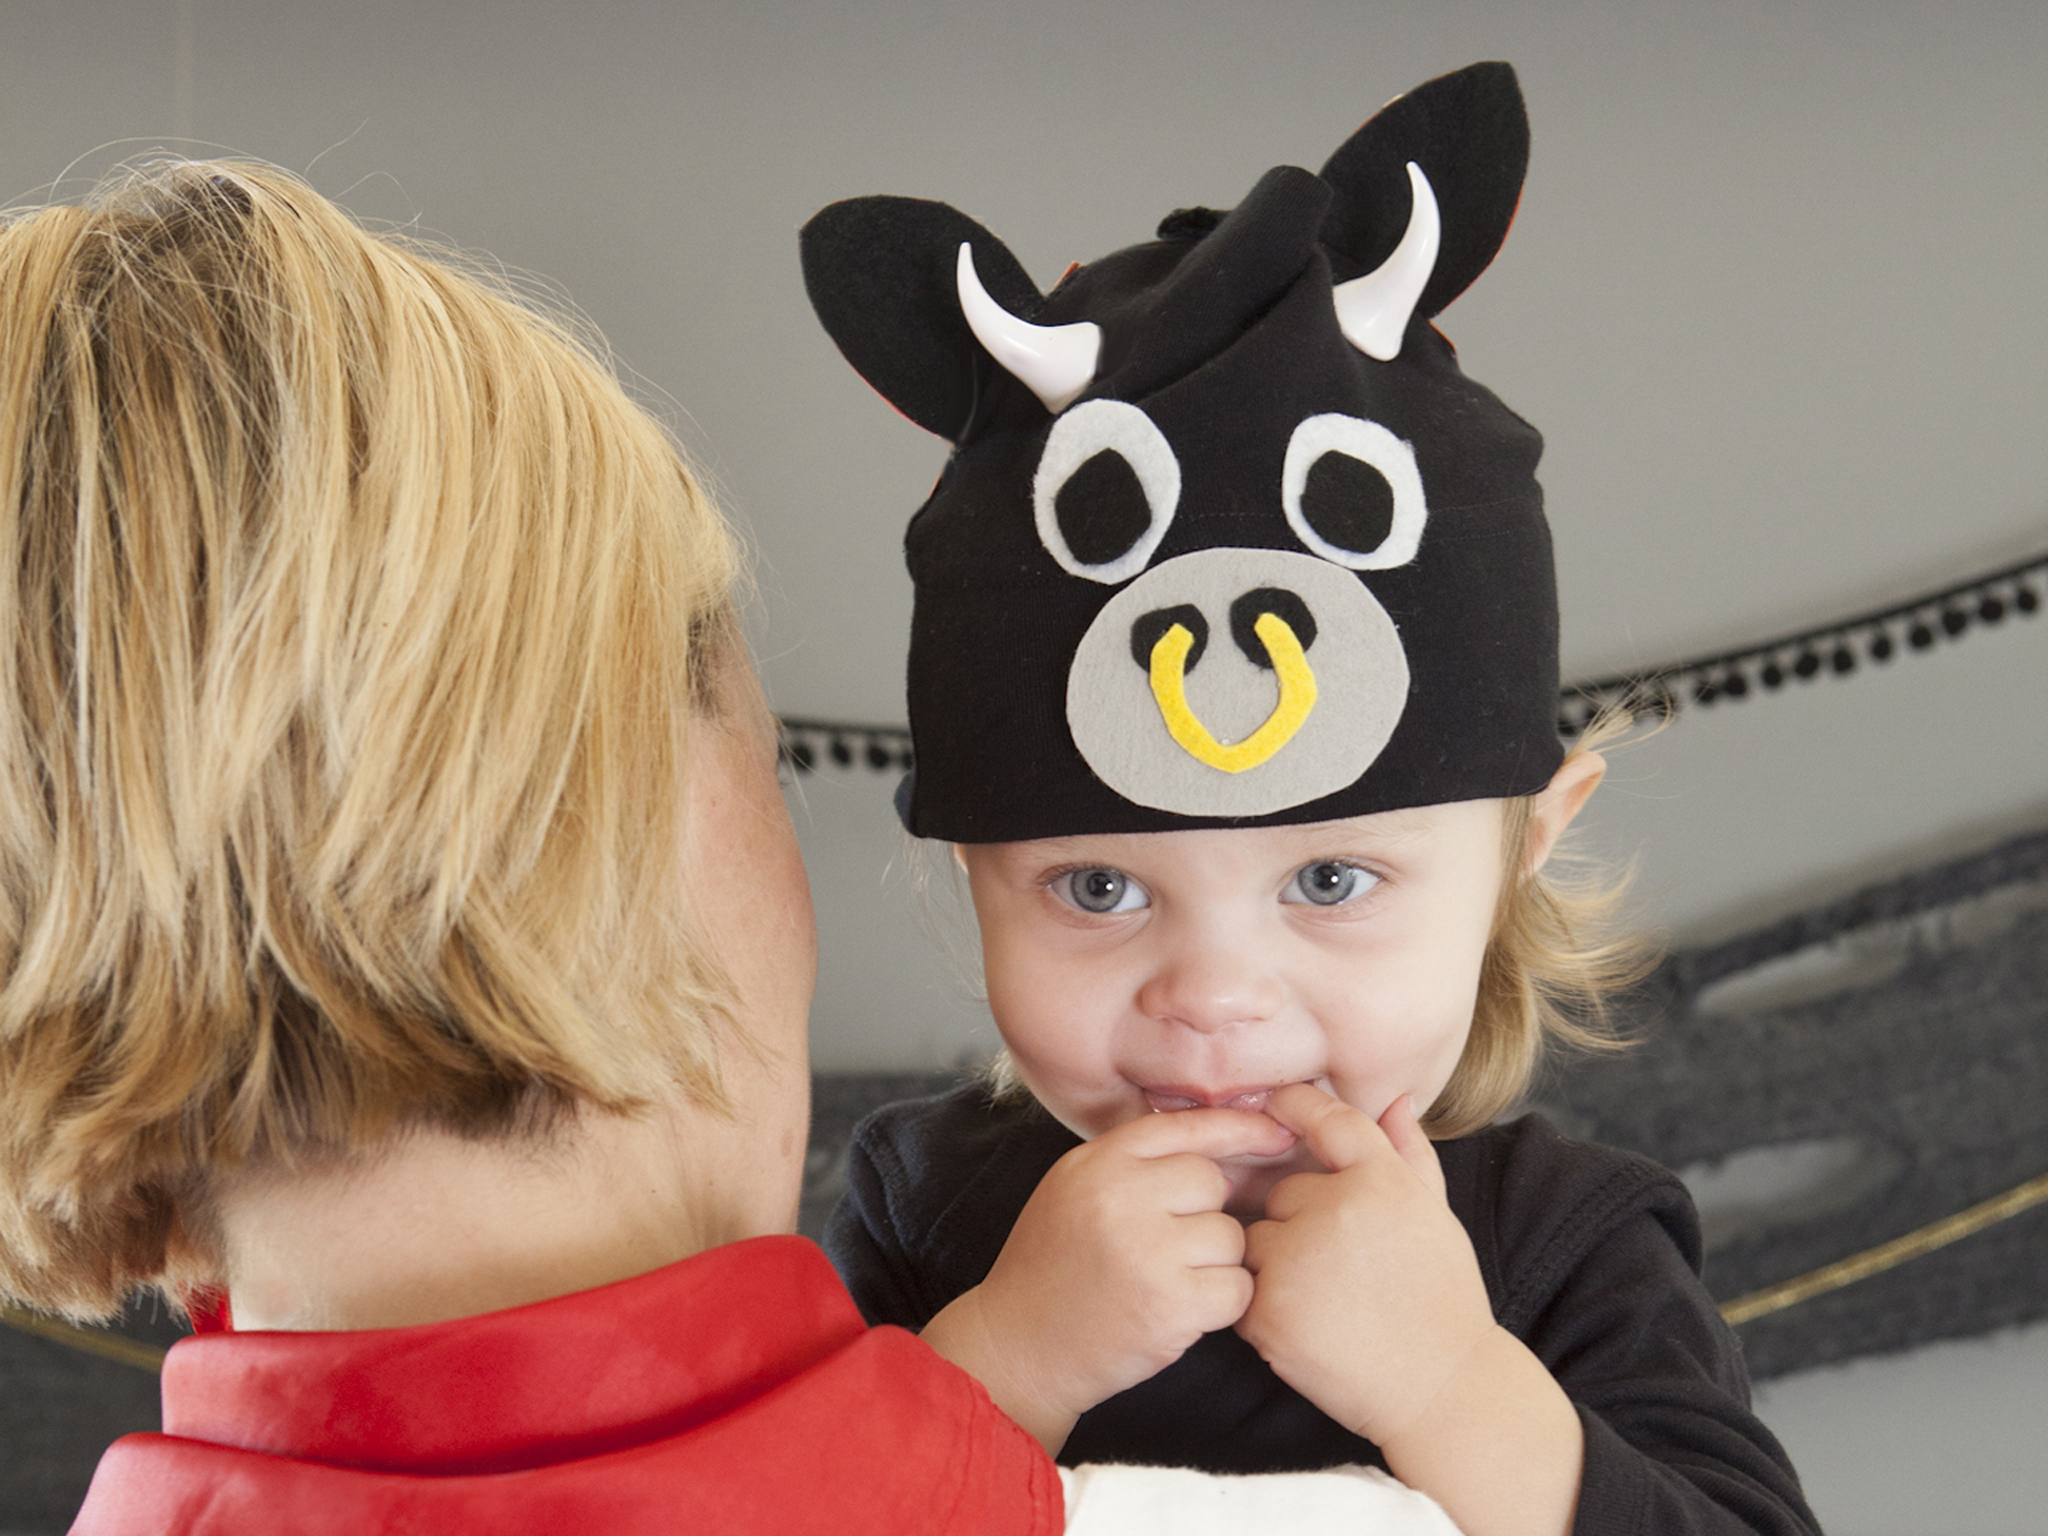 DIY Halloween costume idea: Baby bull